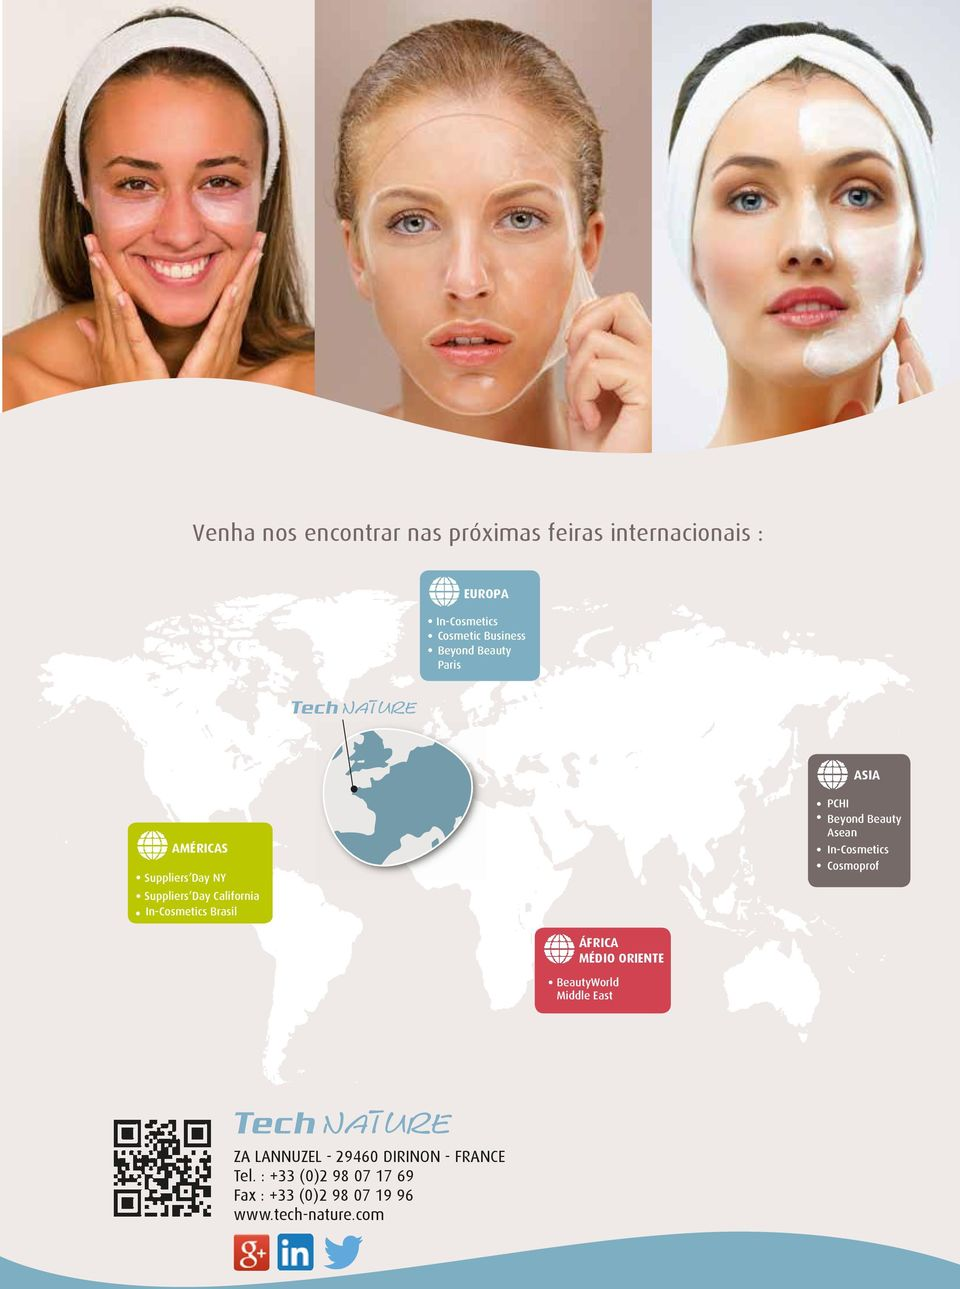 PCHI Beyond Beauty Asean In-Cosmetics Cosmoprof ÁFRICA MÉDIO ORIENTE BeautyWorld Middle East ZA